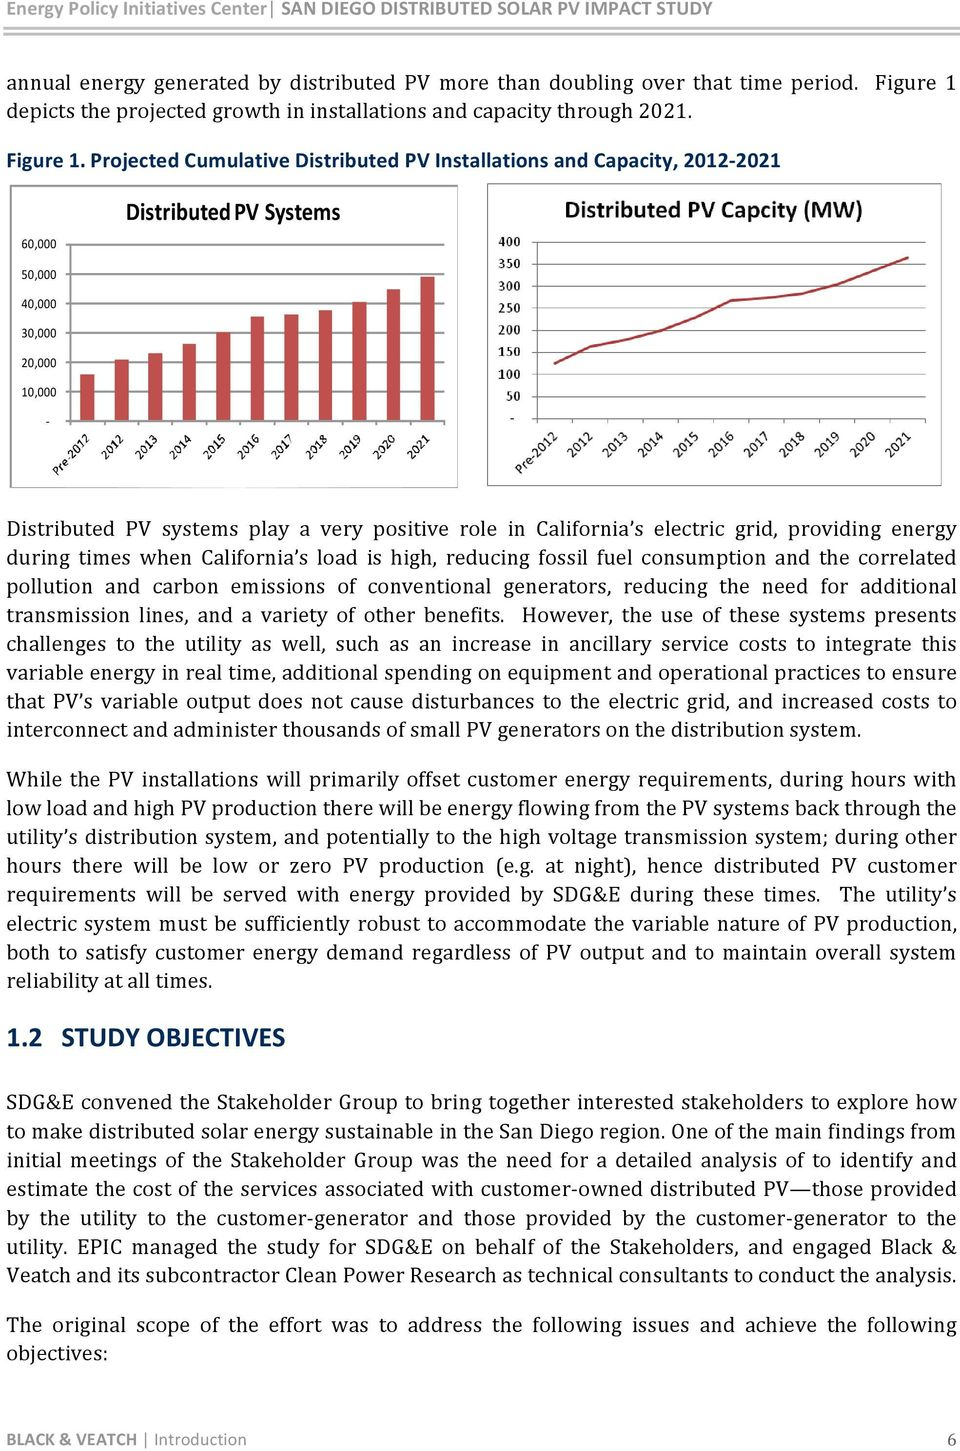 Projected Cumulative Distributed PV Installations and Capacity, 2012-2021 60,000 Distributed PV Systems 50,000 40,000 30,000 20,000 10,000 - Distributed PV systems play a very positive role in